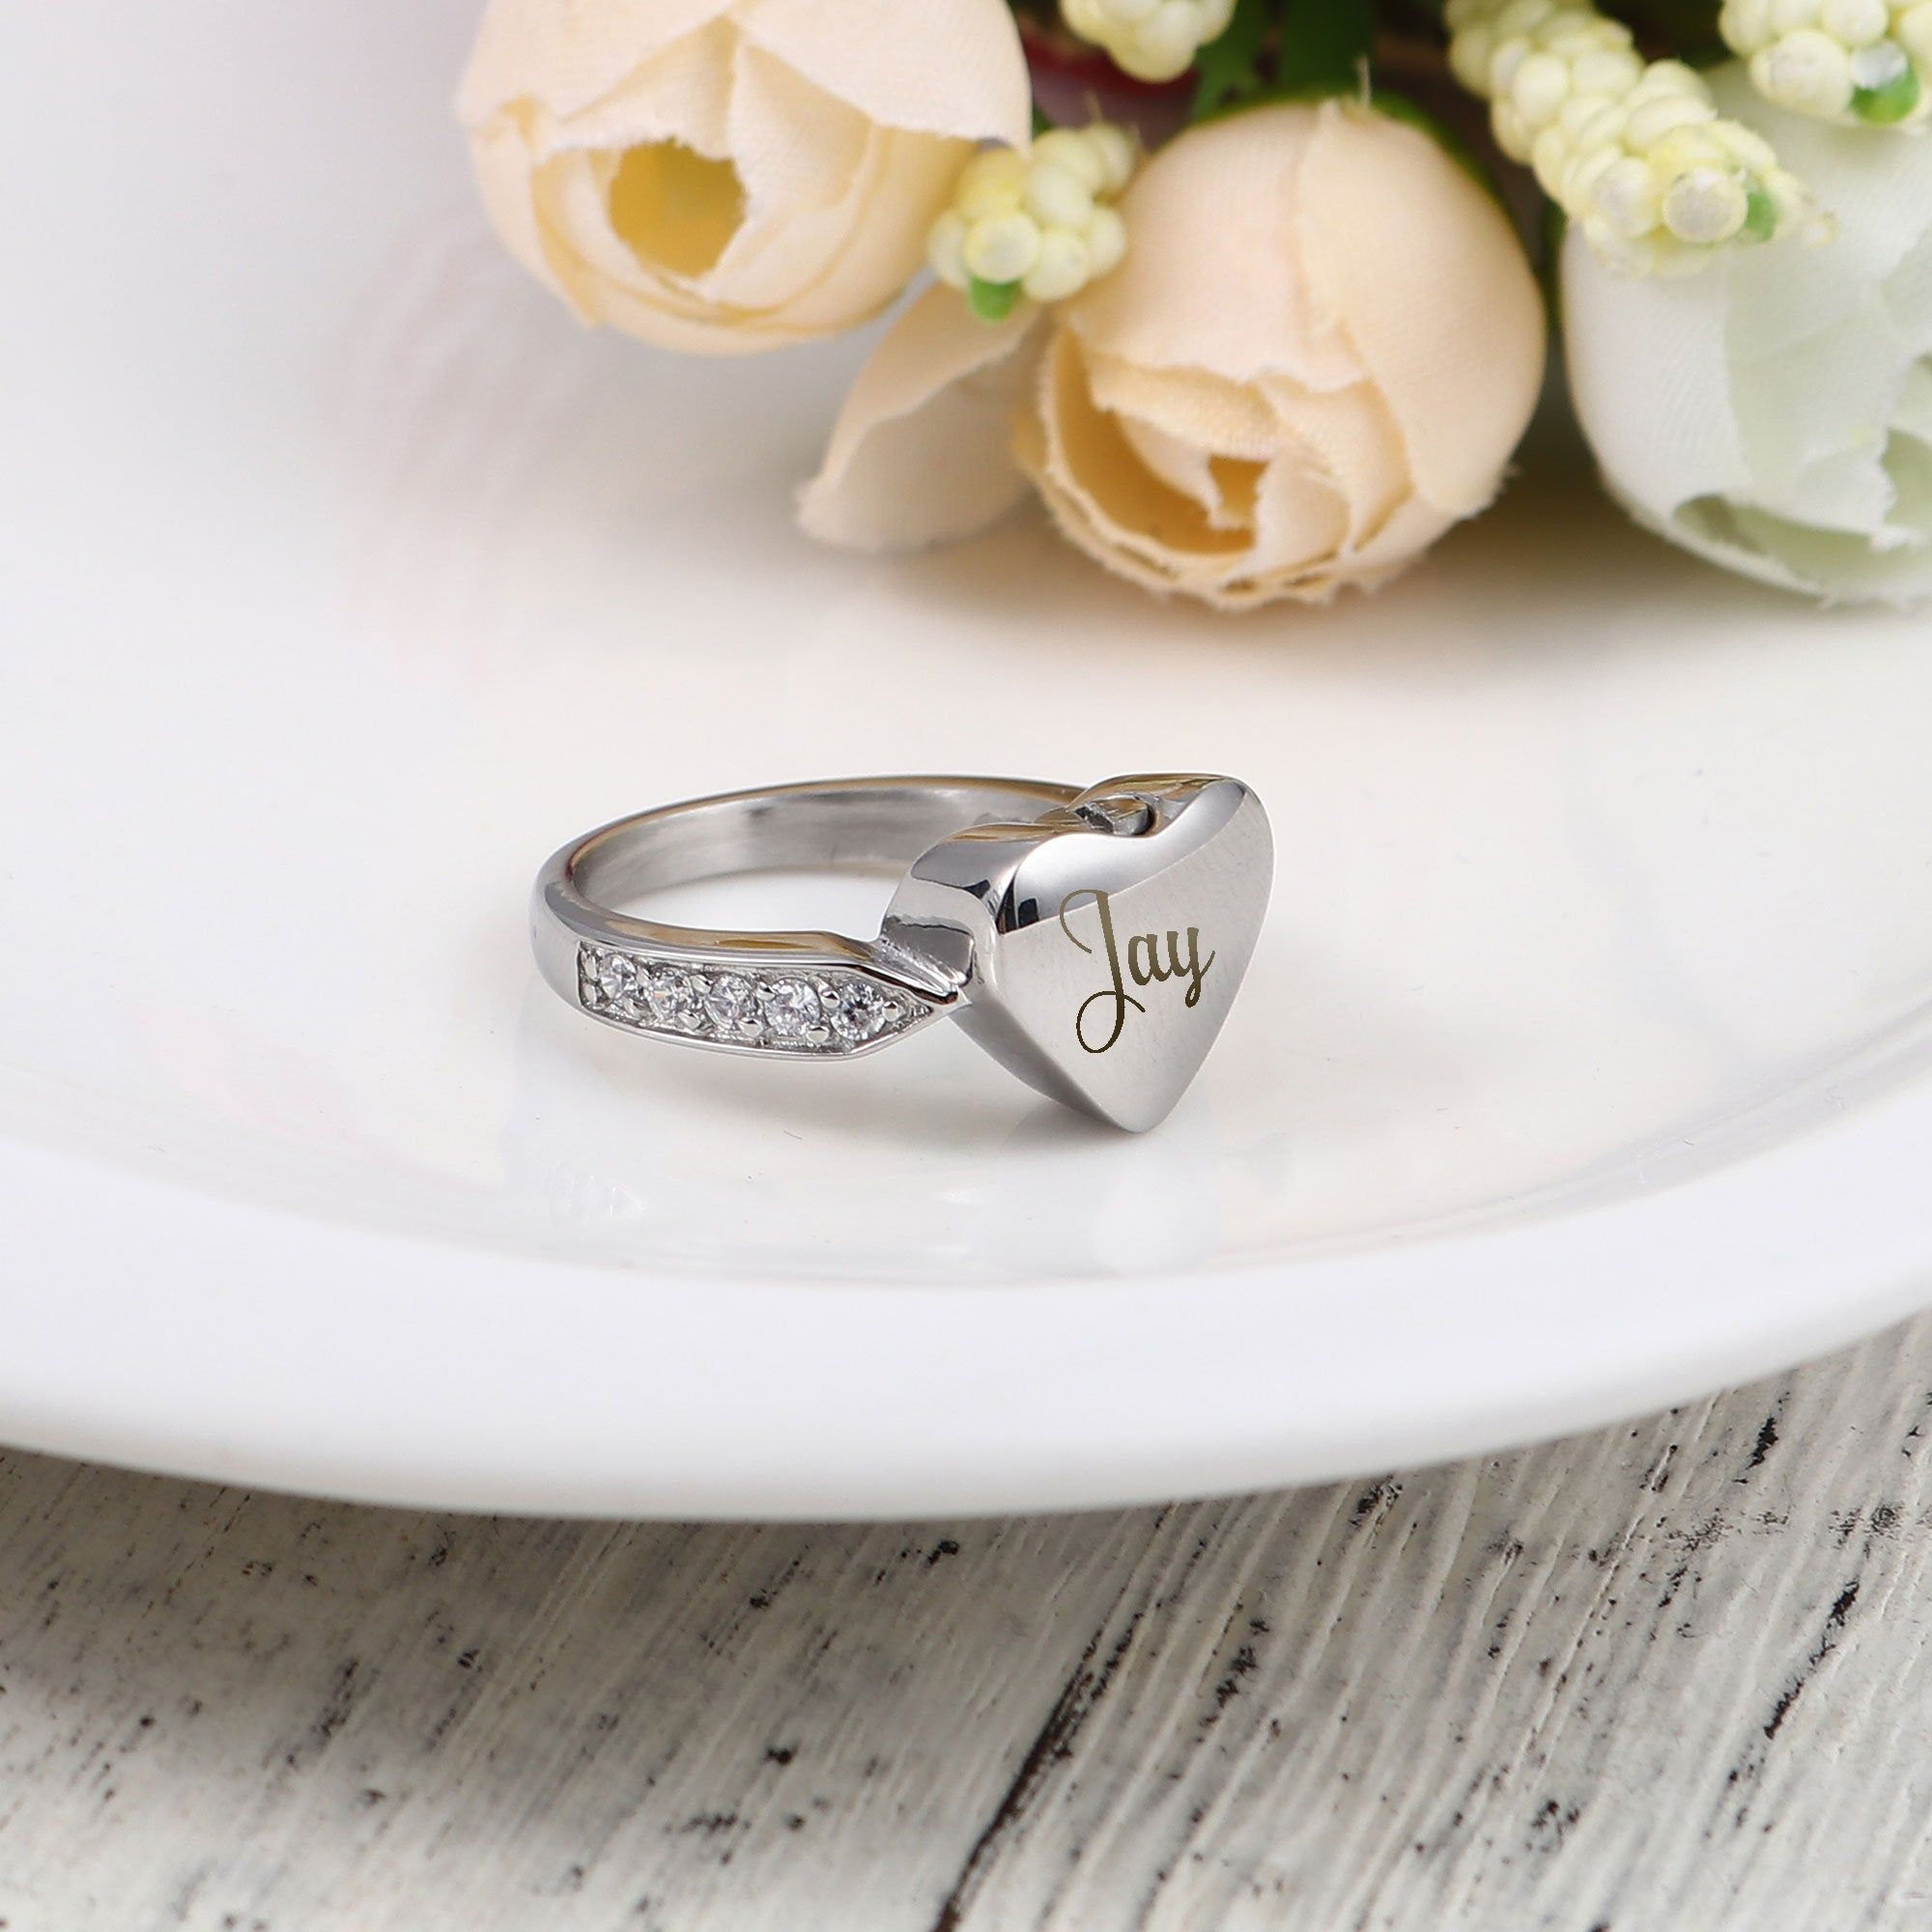 Personalized Heart Cremation Ring Urn Size 6 10Heart Urn